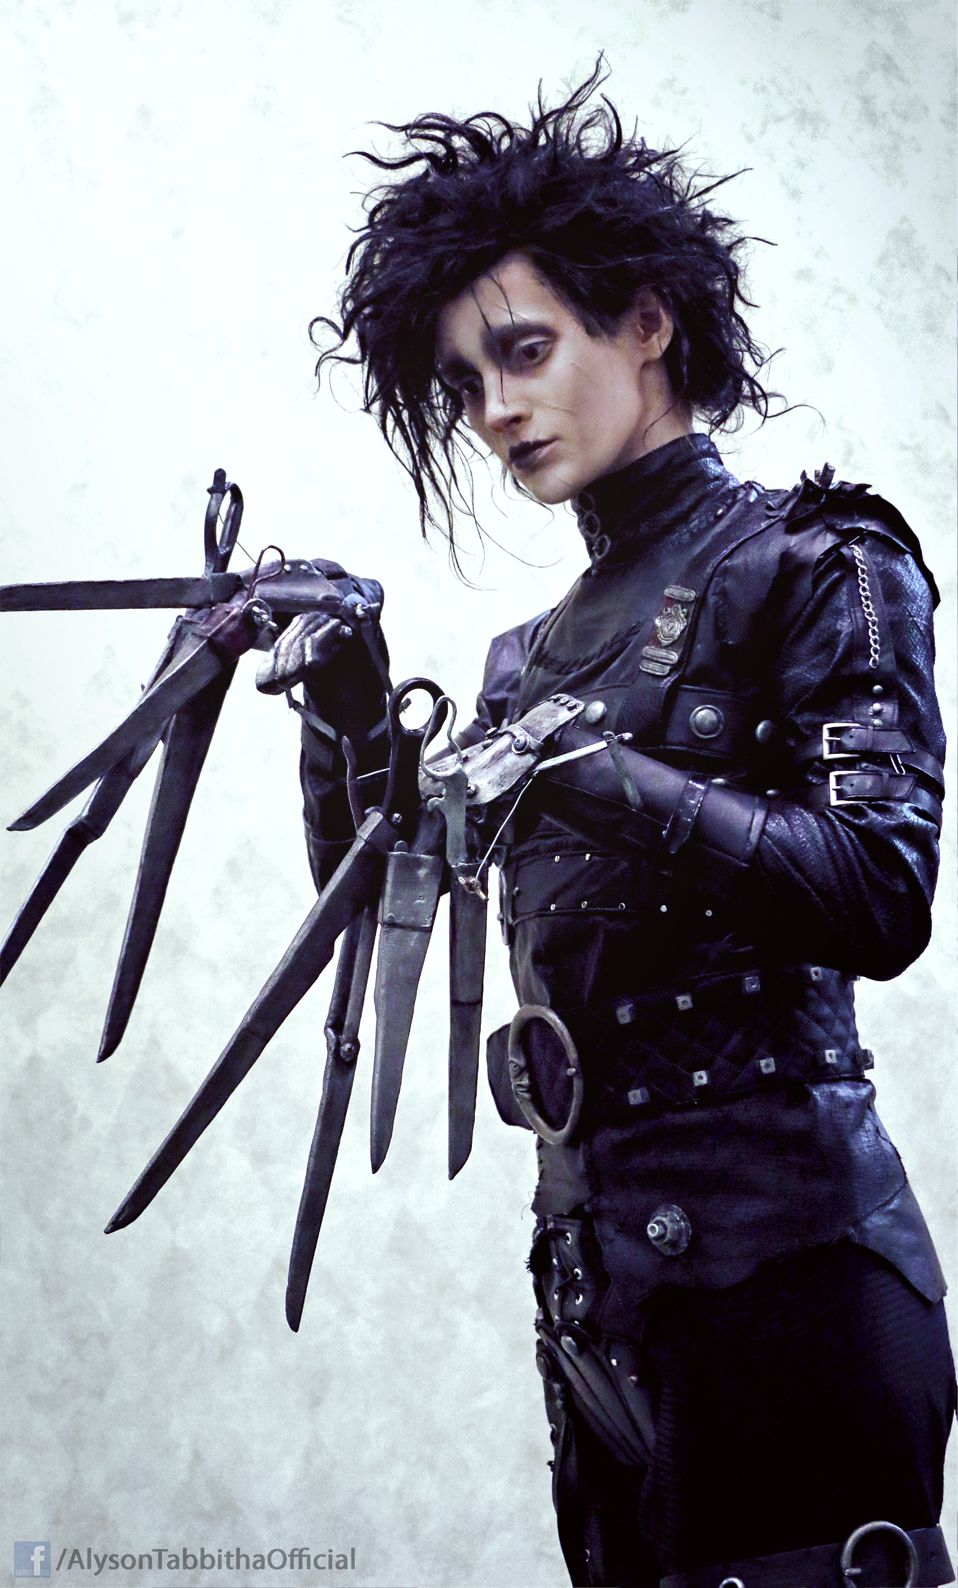 the concept of acceptance in society in edward scissorhands a movie by tim burton Tim burton ♡ really love this concept edward scissorhands - tim burton beetlejuice quotes tim o'brien movie bedroom tim burton corpse bride tim.